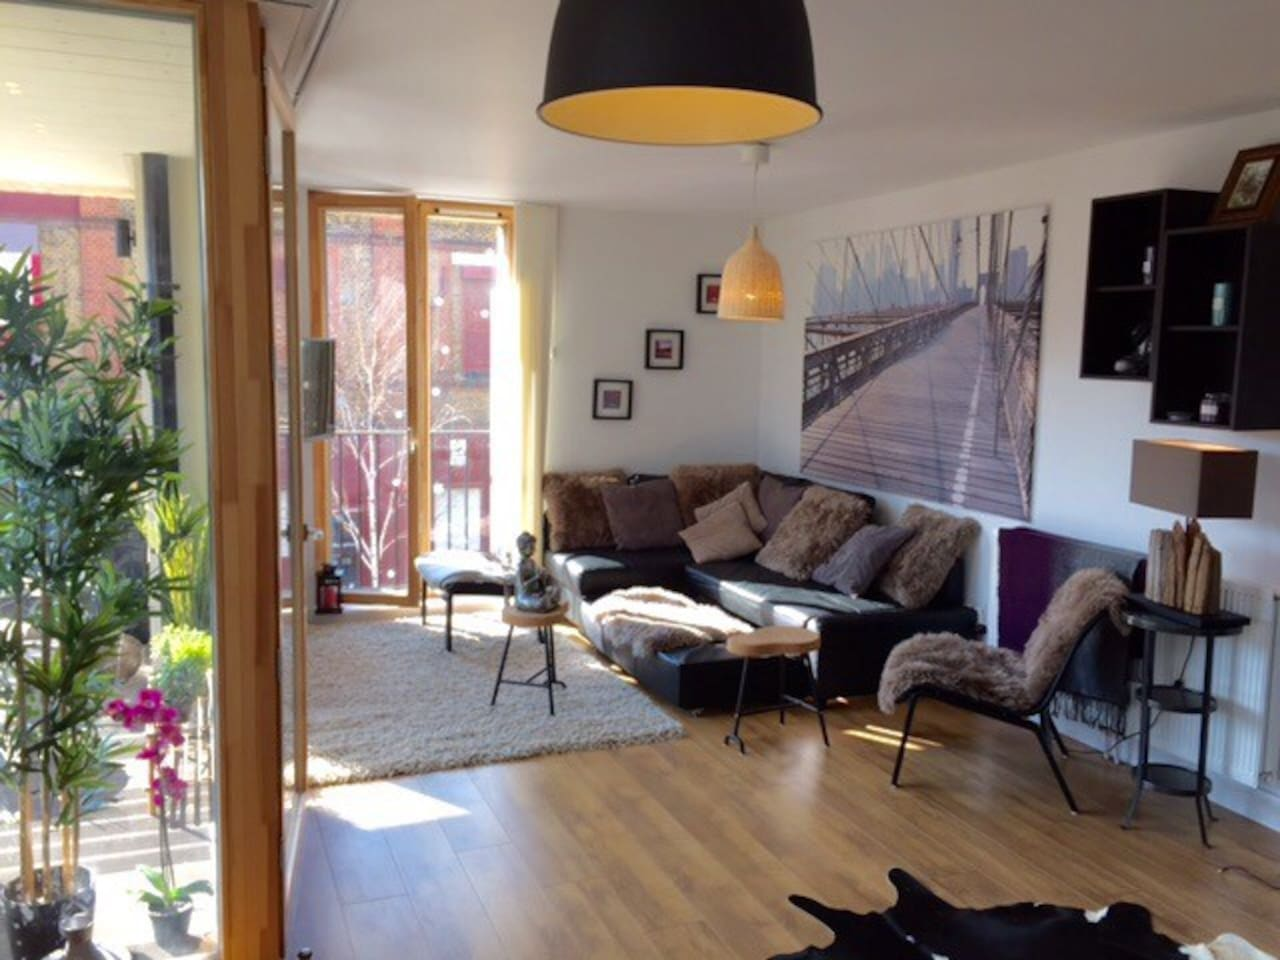 Gorgeous bright light and large living room area - all brand new. Sofa can turn into King Bed if needed. Lots of window, 40 inch TV with regular TV, Apple TV and Amazon Fire. Books, games and fireplace.